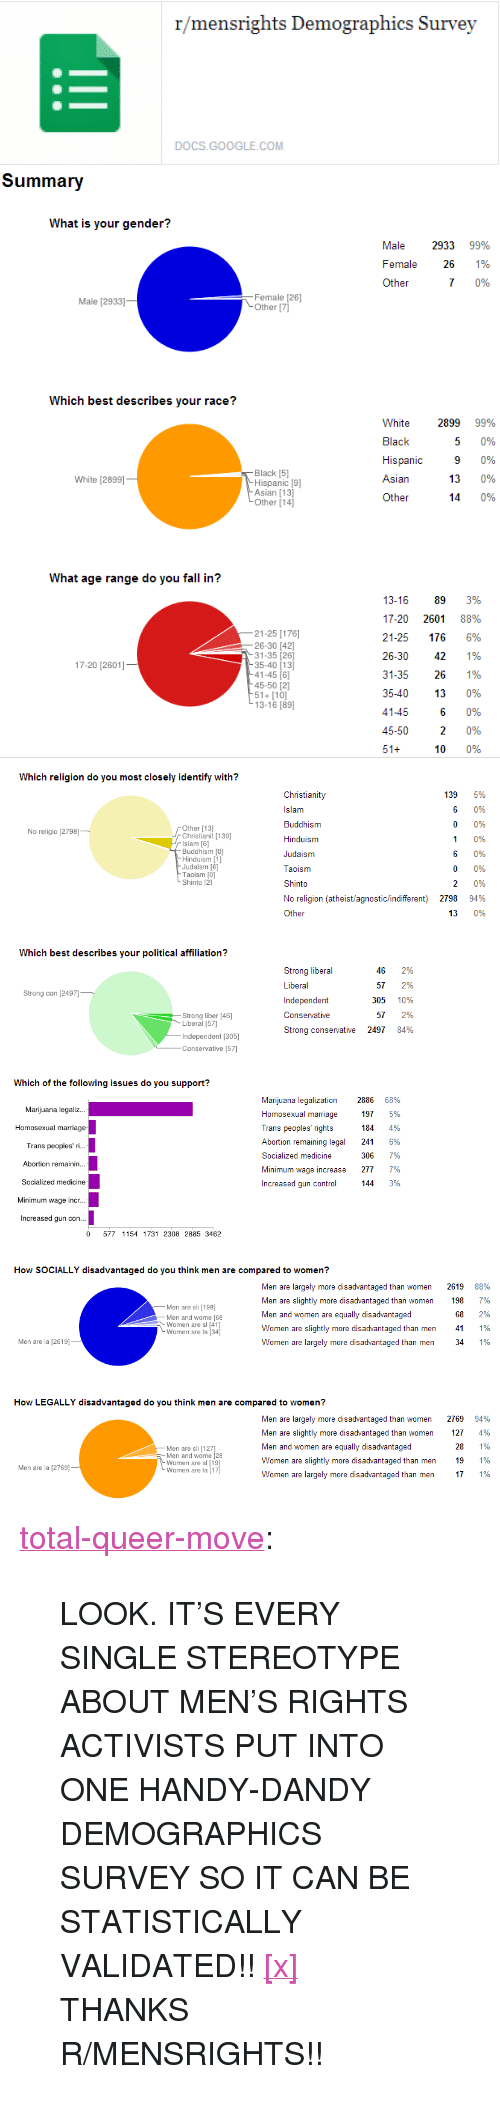 Agnostic: r/mensrights Demographics Survey  DOCS.GOOGLE.COM   Summary  What is your gender?  Male 2933 99%  Female 26 1%  Other  7 0%  Female [26]  Other [7]  Male [2933]  Which best describes your race?  White  Black  Hispanic  Asian  Other  2899 99%  5 0%  9 0%  13 0%  14 0%  Black [5]  Hispanic [9]  Asian [13]  Other [14]  White [2899]  What age range do you fall in?  21-25 [176]  26-30 42]  31-35 [26]  35-40 13]  41-45 [6]  45-50 [2]  51+10]  13-16 [89]  13-16 89 3%  17-20 2601 88%  21-25 176 6%  26-30 42 1%  31-35 26 1%  35-40 13 0%  60%  096  10 0%  17-20 [2601]  41-45  45-50   Which religion do you most closely identify with?  Christianity  slam  Buddhism  Hinduism  Judaism  Taoism  Shinto  No religion (atheist/agnostic/indifferent)  Other  139 5%  0%  0 0%  1 0%  60%  0 0%  0%  94%  13 0%  Other [13]  Christianit [139]  Islam [6]  Buddhism [0]  Hinduism [1]  Judaism [6]  Taoism [O]  Shinto 21  No religio [2798]  2798  Which best describes your political affiliation?  Strong liberal  Liberal  Independent  Conservative  Strong conservative 2497 8496  46 2%  57 2%  305 10%  57 2%  Strong con [2497]  Strong liber [46]  Liberal [57]  Independent [305]  Conservative [57]   Which of the following issues do you support?  Marijuana legaliz..  Homosexual marriage  Trans peoples' ri...  Abortion remainin...  Socialized medicine  Minimum wage incr..  Increased gun con...  Marijuana legalization  Homosexual marriage  Trans peoples' rights  Abortion remaining legal  Socialized medicine  Minimum wage increase  Increased gun control  28866896  197 5%  184 4%  241 6%  306 7%  277 7%  144 3%  0 577 1154 1731 2308 2885 3462  How SOCIALLY disadvantaged do you think men are compared to women?  Men are largely more disadvantaged than women  Men are slightly more disadvantaged than women  Men and women are equally disadvantaged  Women are slightly more disadvantaged than men  Women are largely more disadvantaged than men  2619  198  68  41  34  88%  7%  2%  1%  1%  Men are sli [19